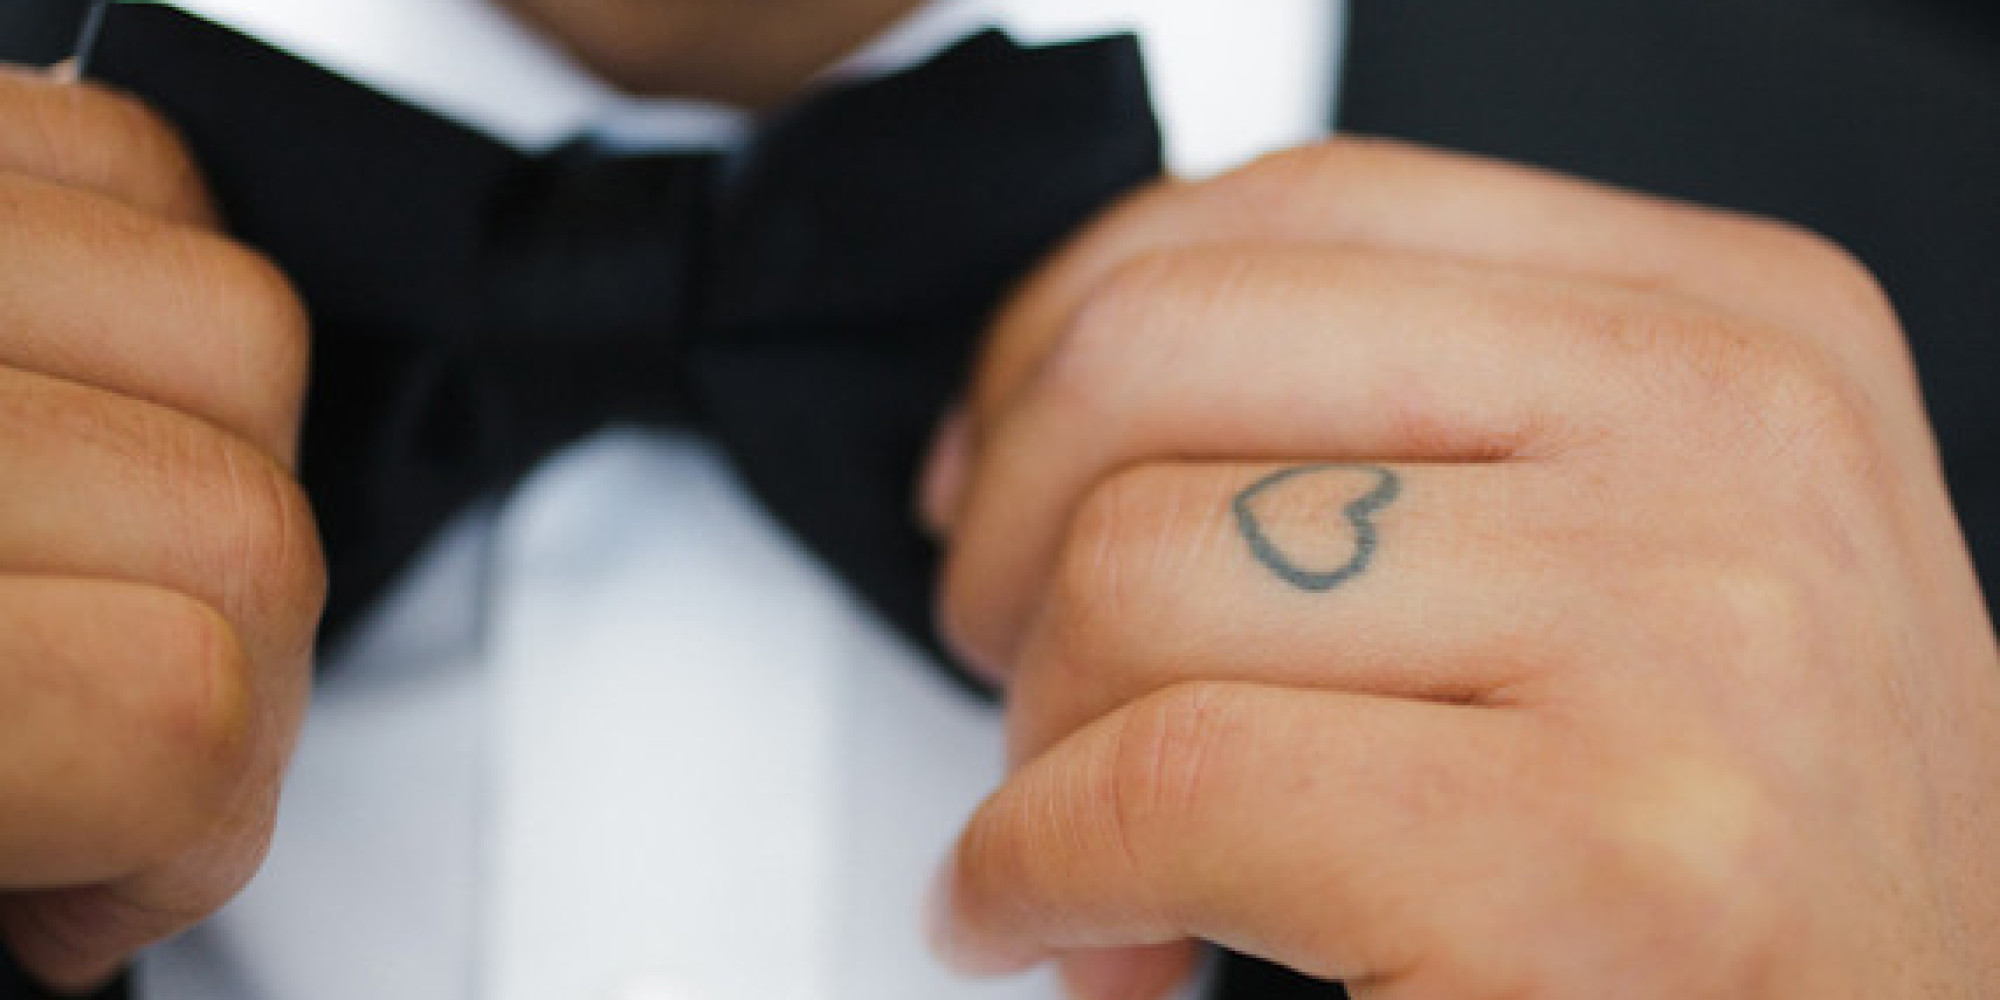 8 Tattoo Wedding Ring Ideas That Show Your Commitment For, Like ...